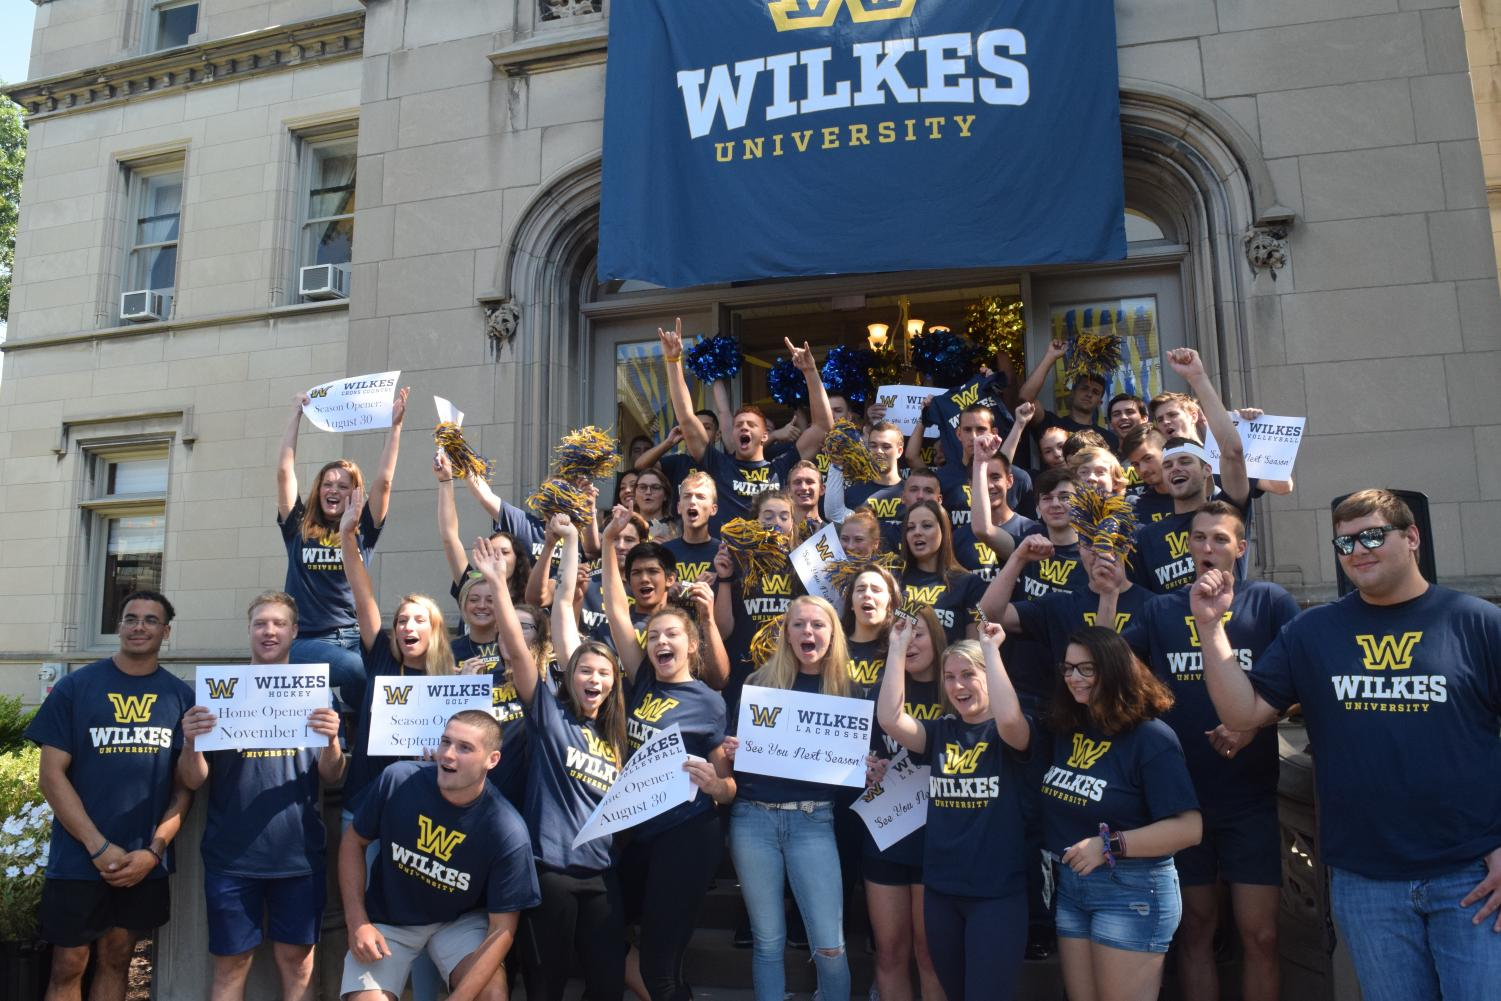 Wilkes+University+sports+teams+and+Marching+Colonels+pose+for+a+photo+in+front+of+the+new+athletics+logo.+